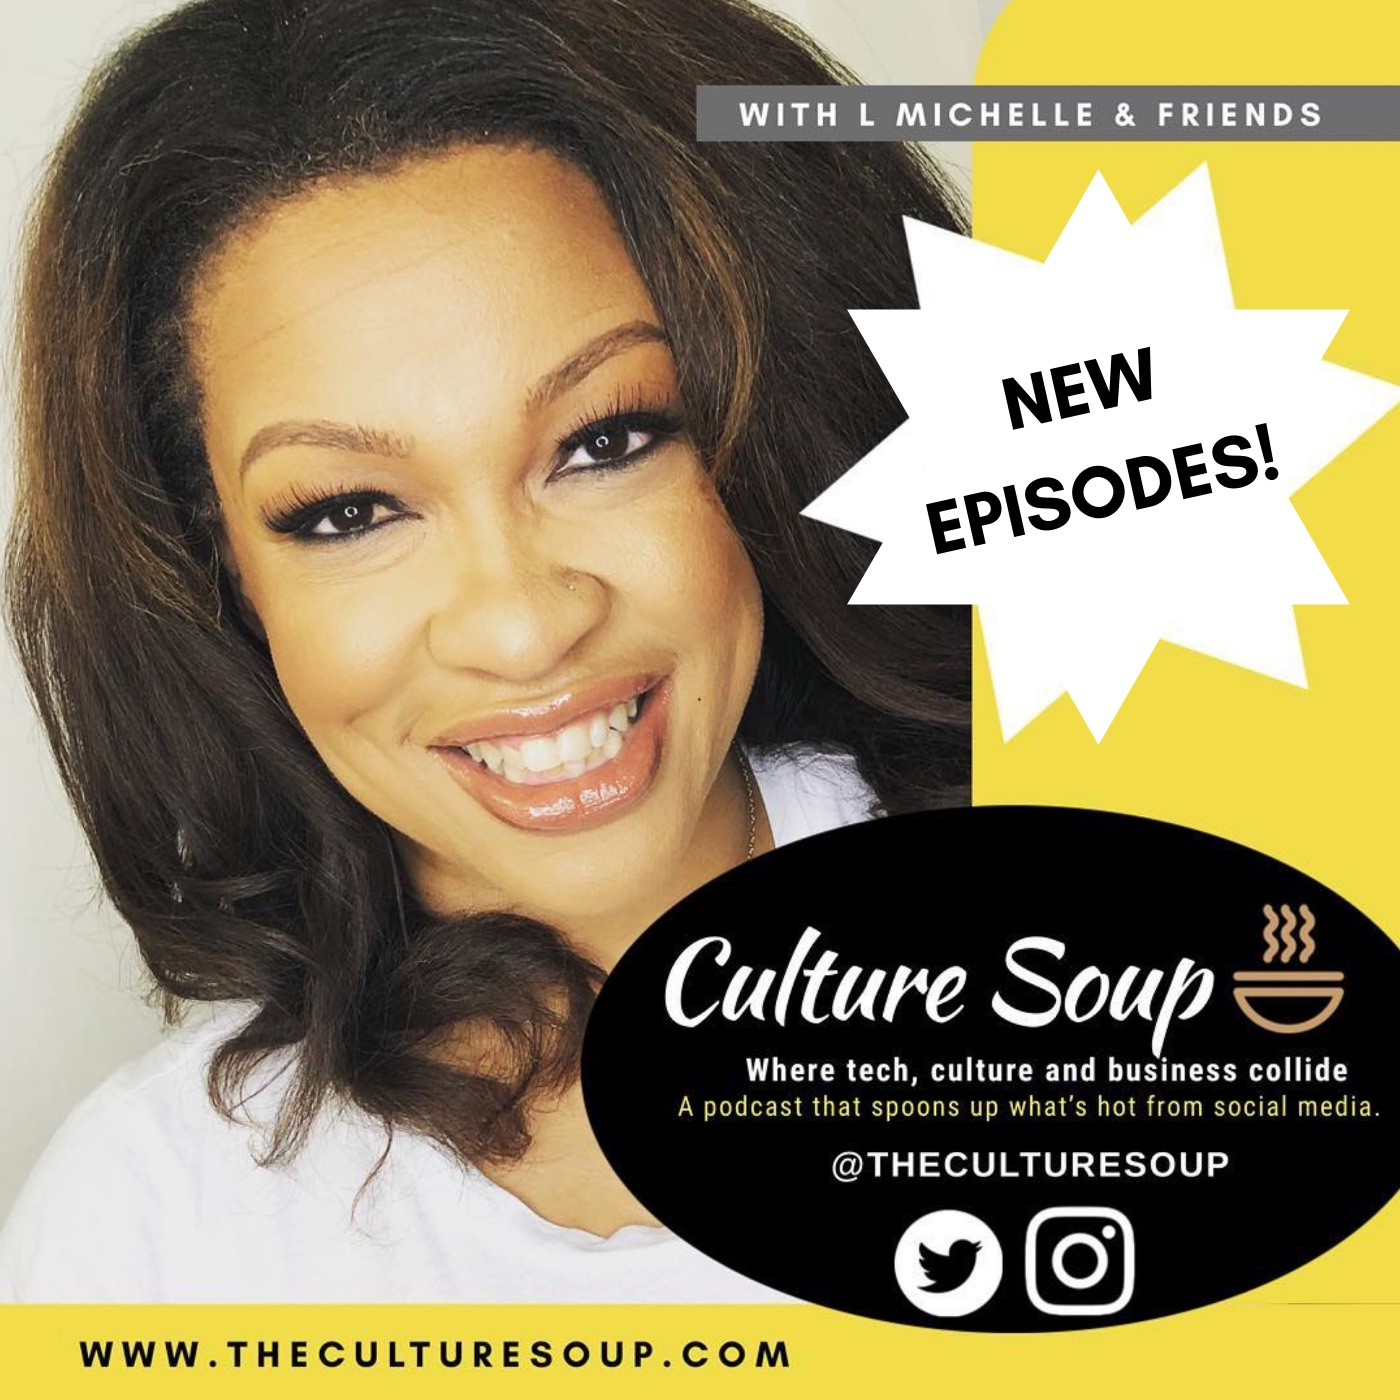 The Culture Soup Podcast